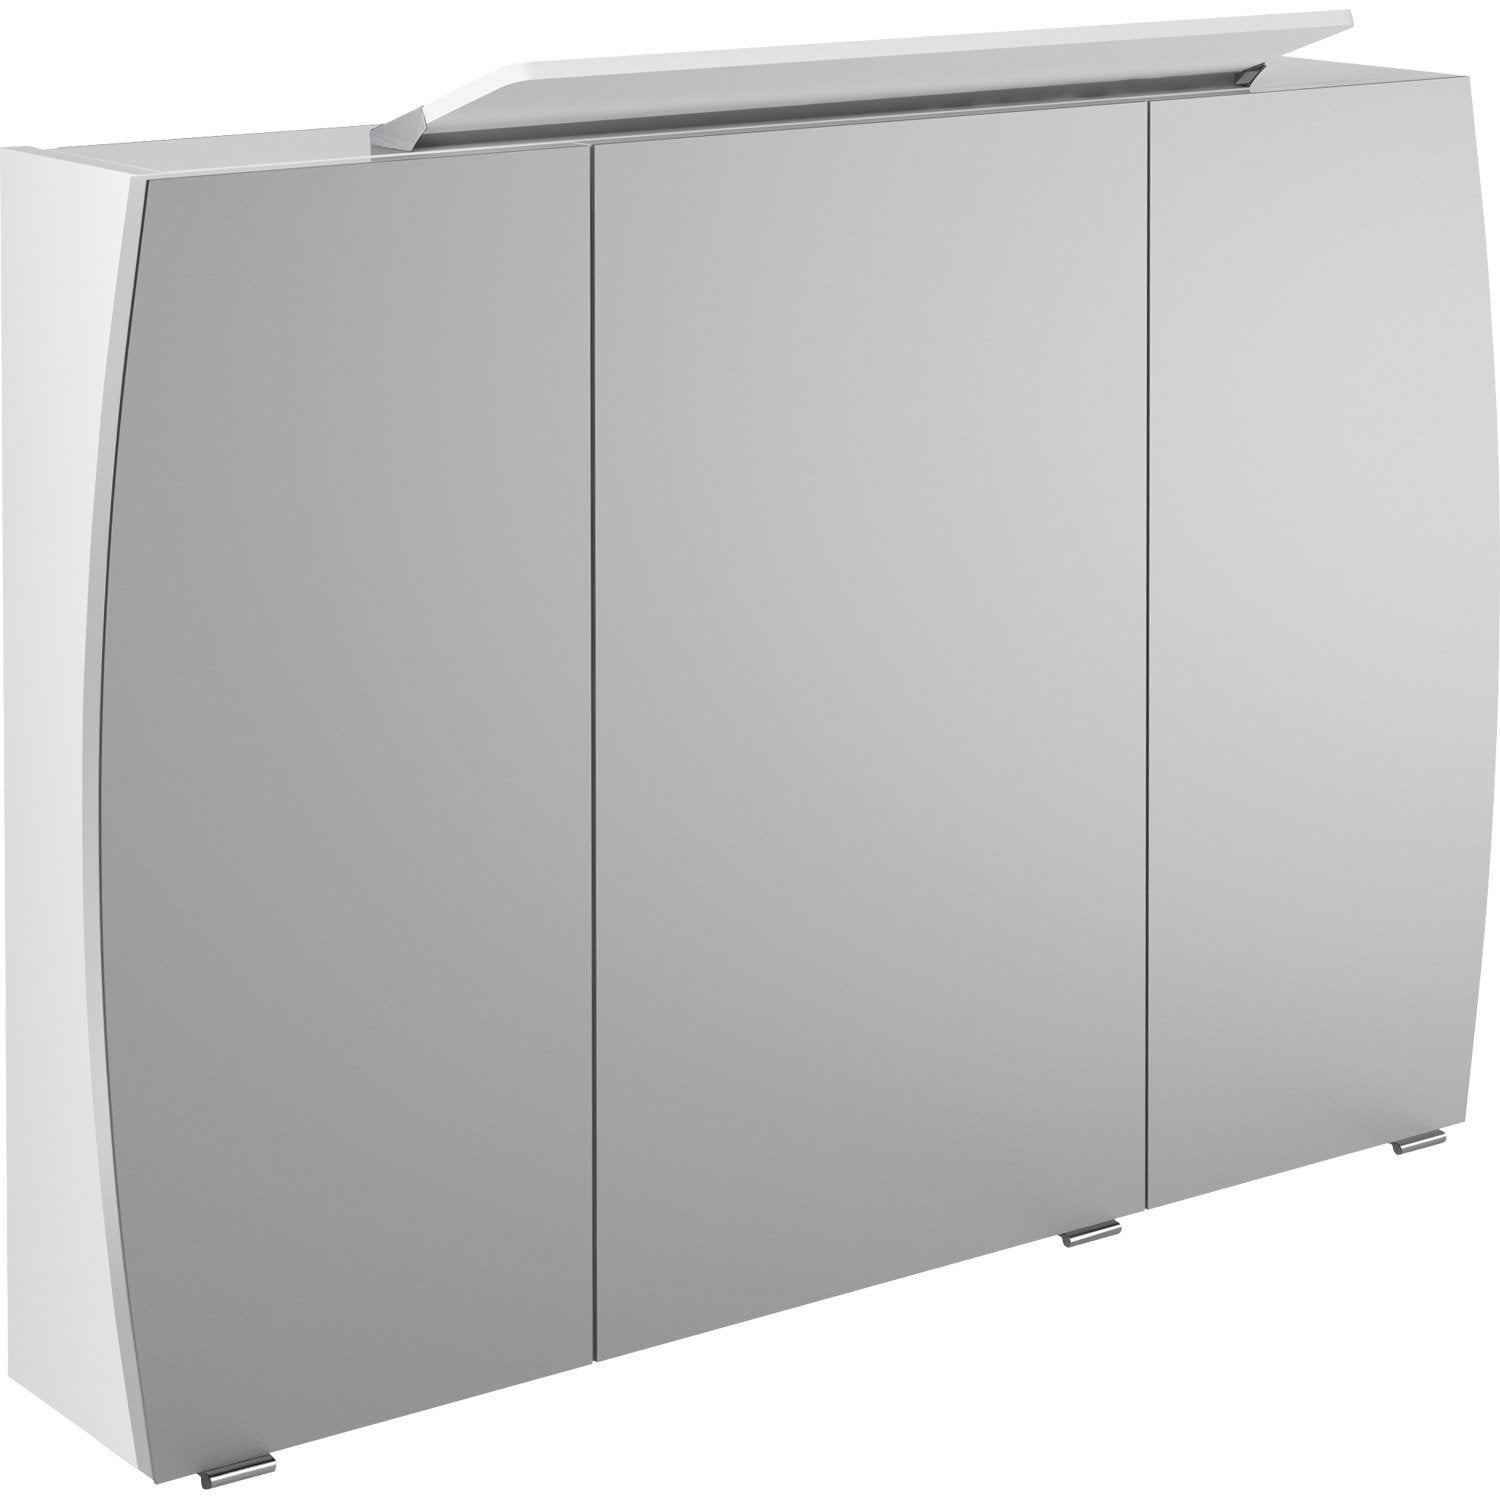 armoire de toilette lumineuse l 100 cm blanc image leroy merlin. Black Bedroom Furniture Sets. Home Design Ideas